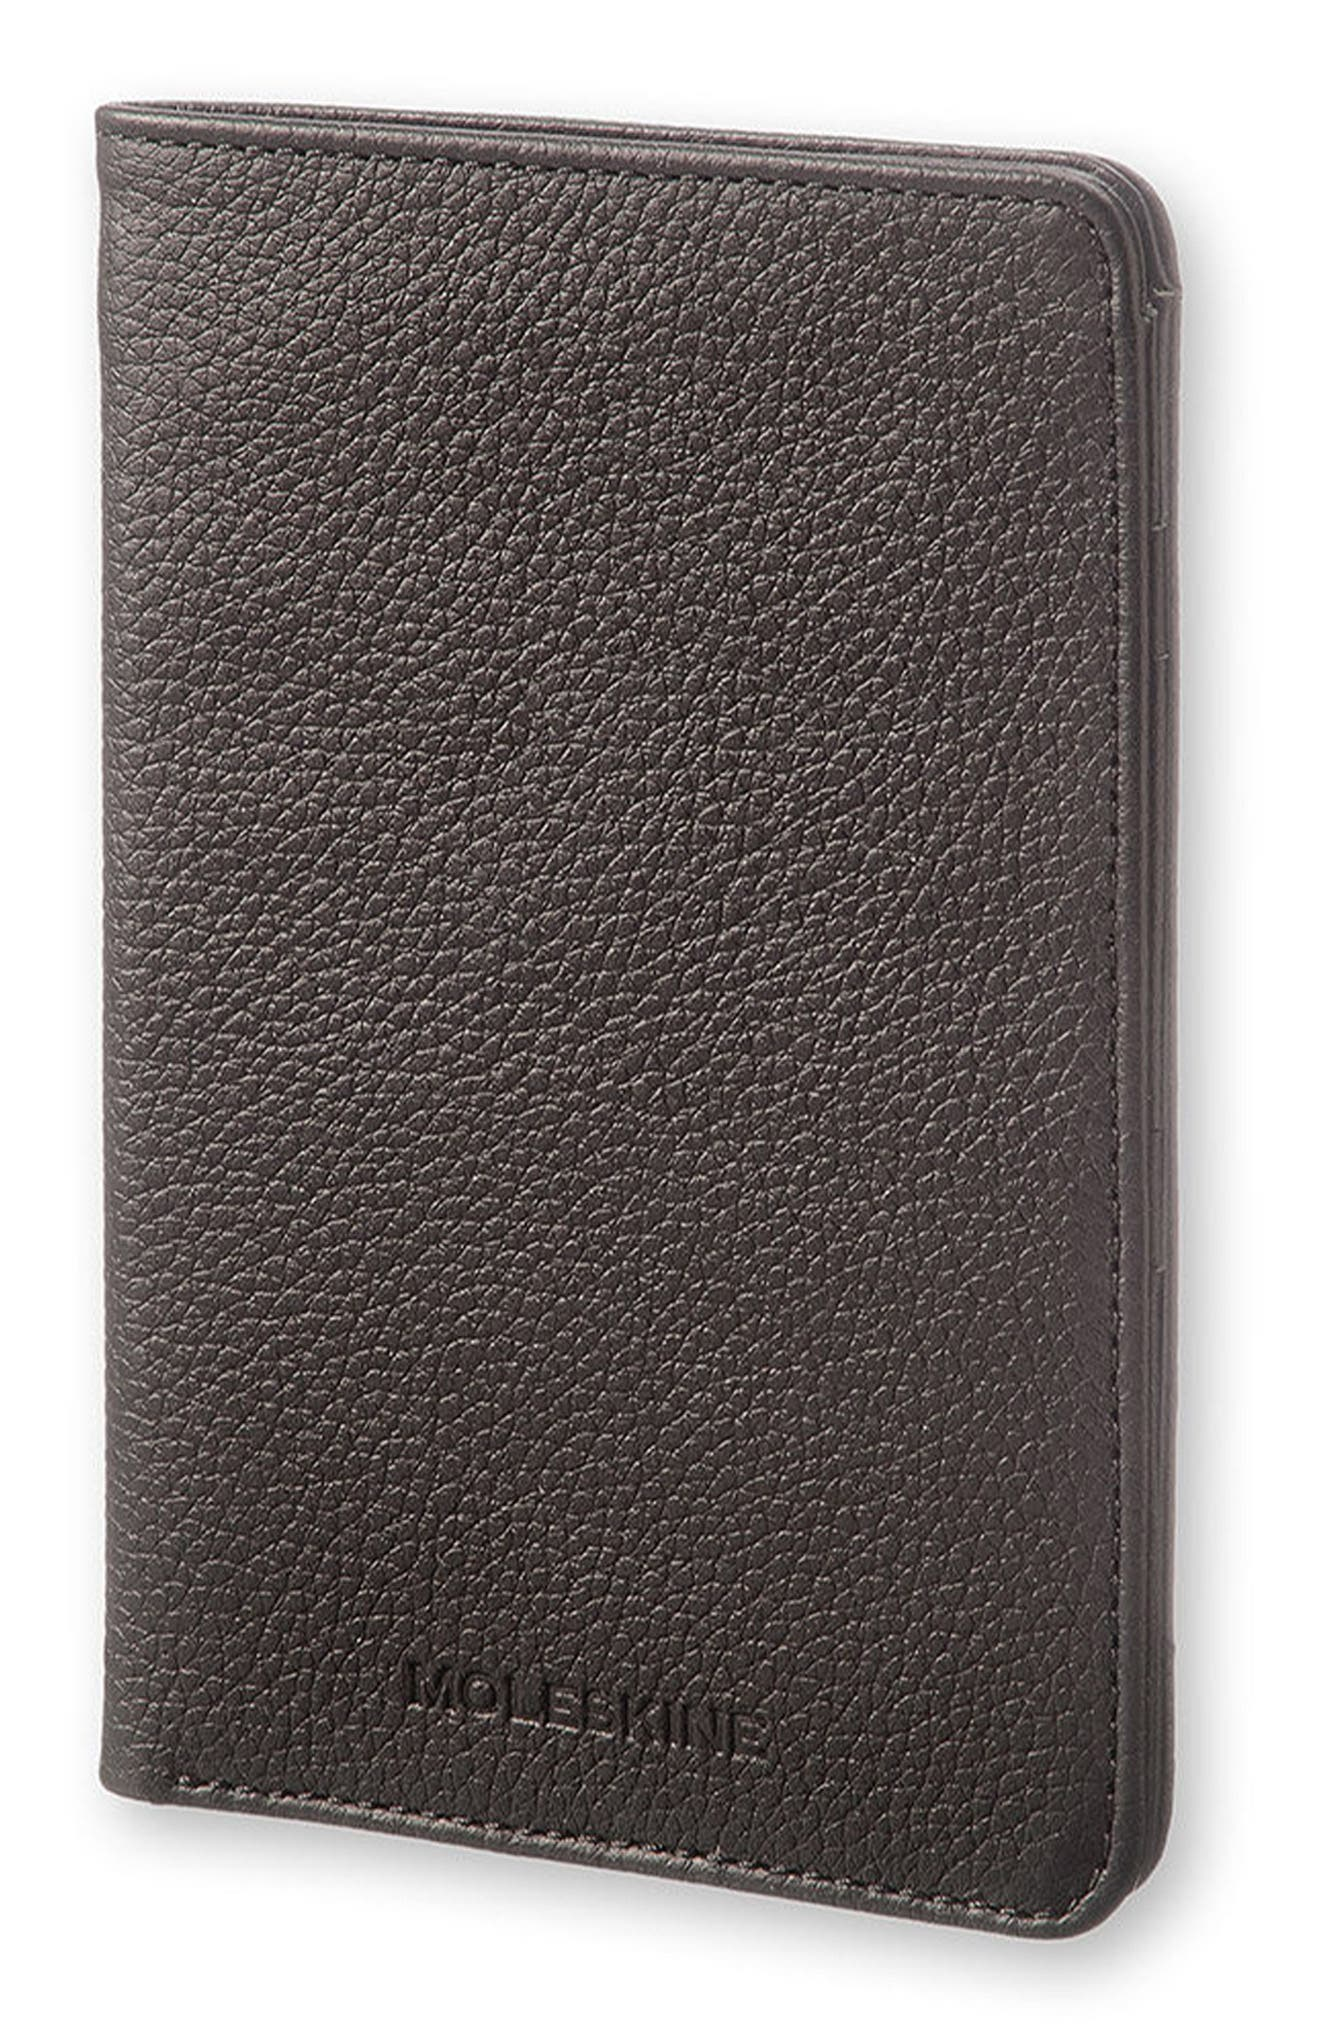 Lineage Leather Passport Wallet,                         Main,                         color, 001